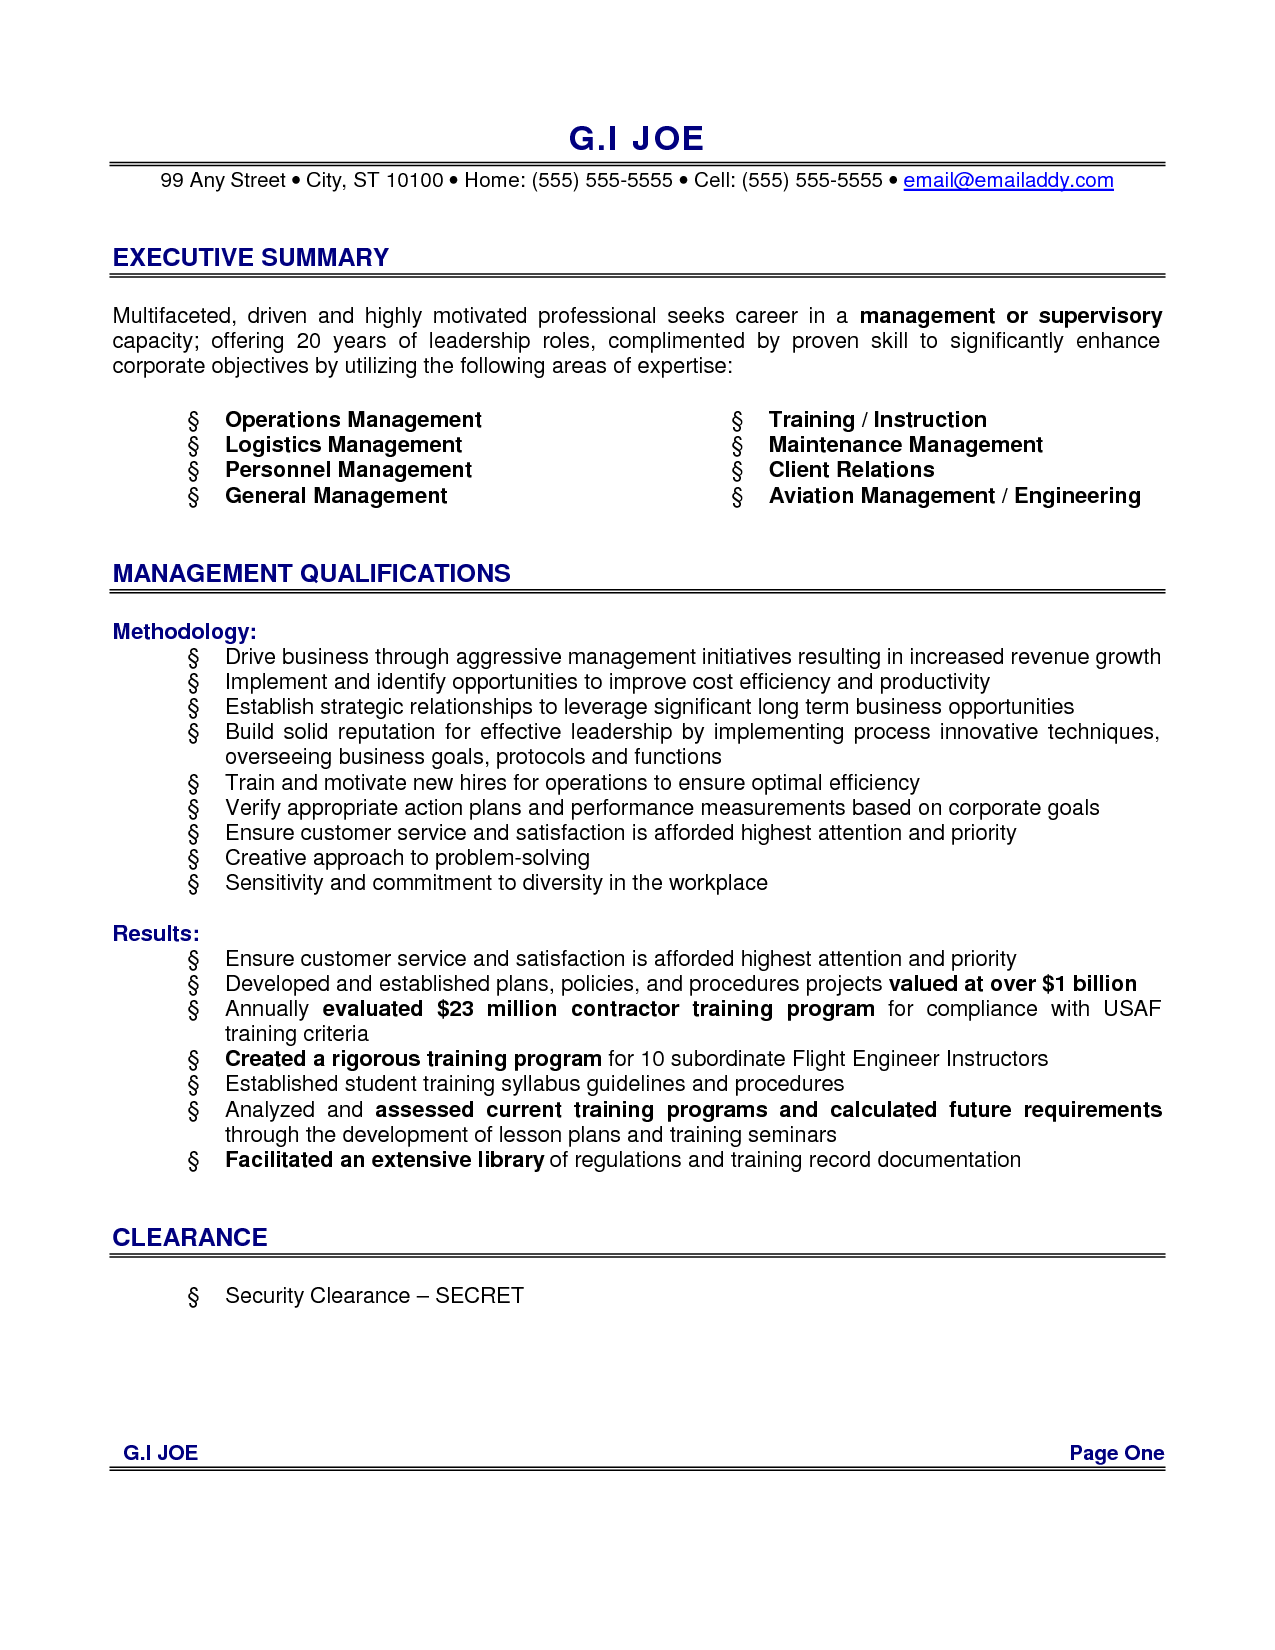 Resume Executive Summary in 2020 | Resume summary examples, Resume  examples, Manager resume